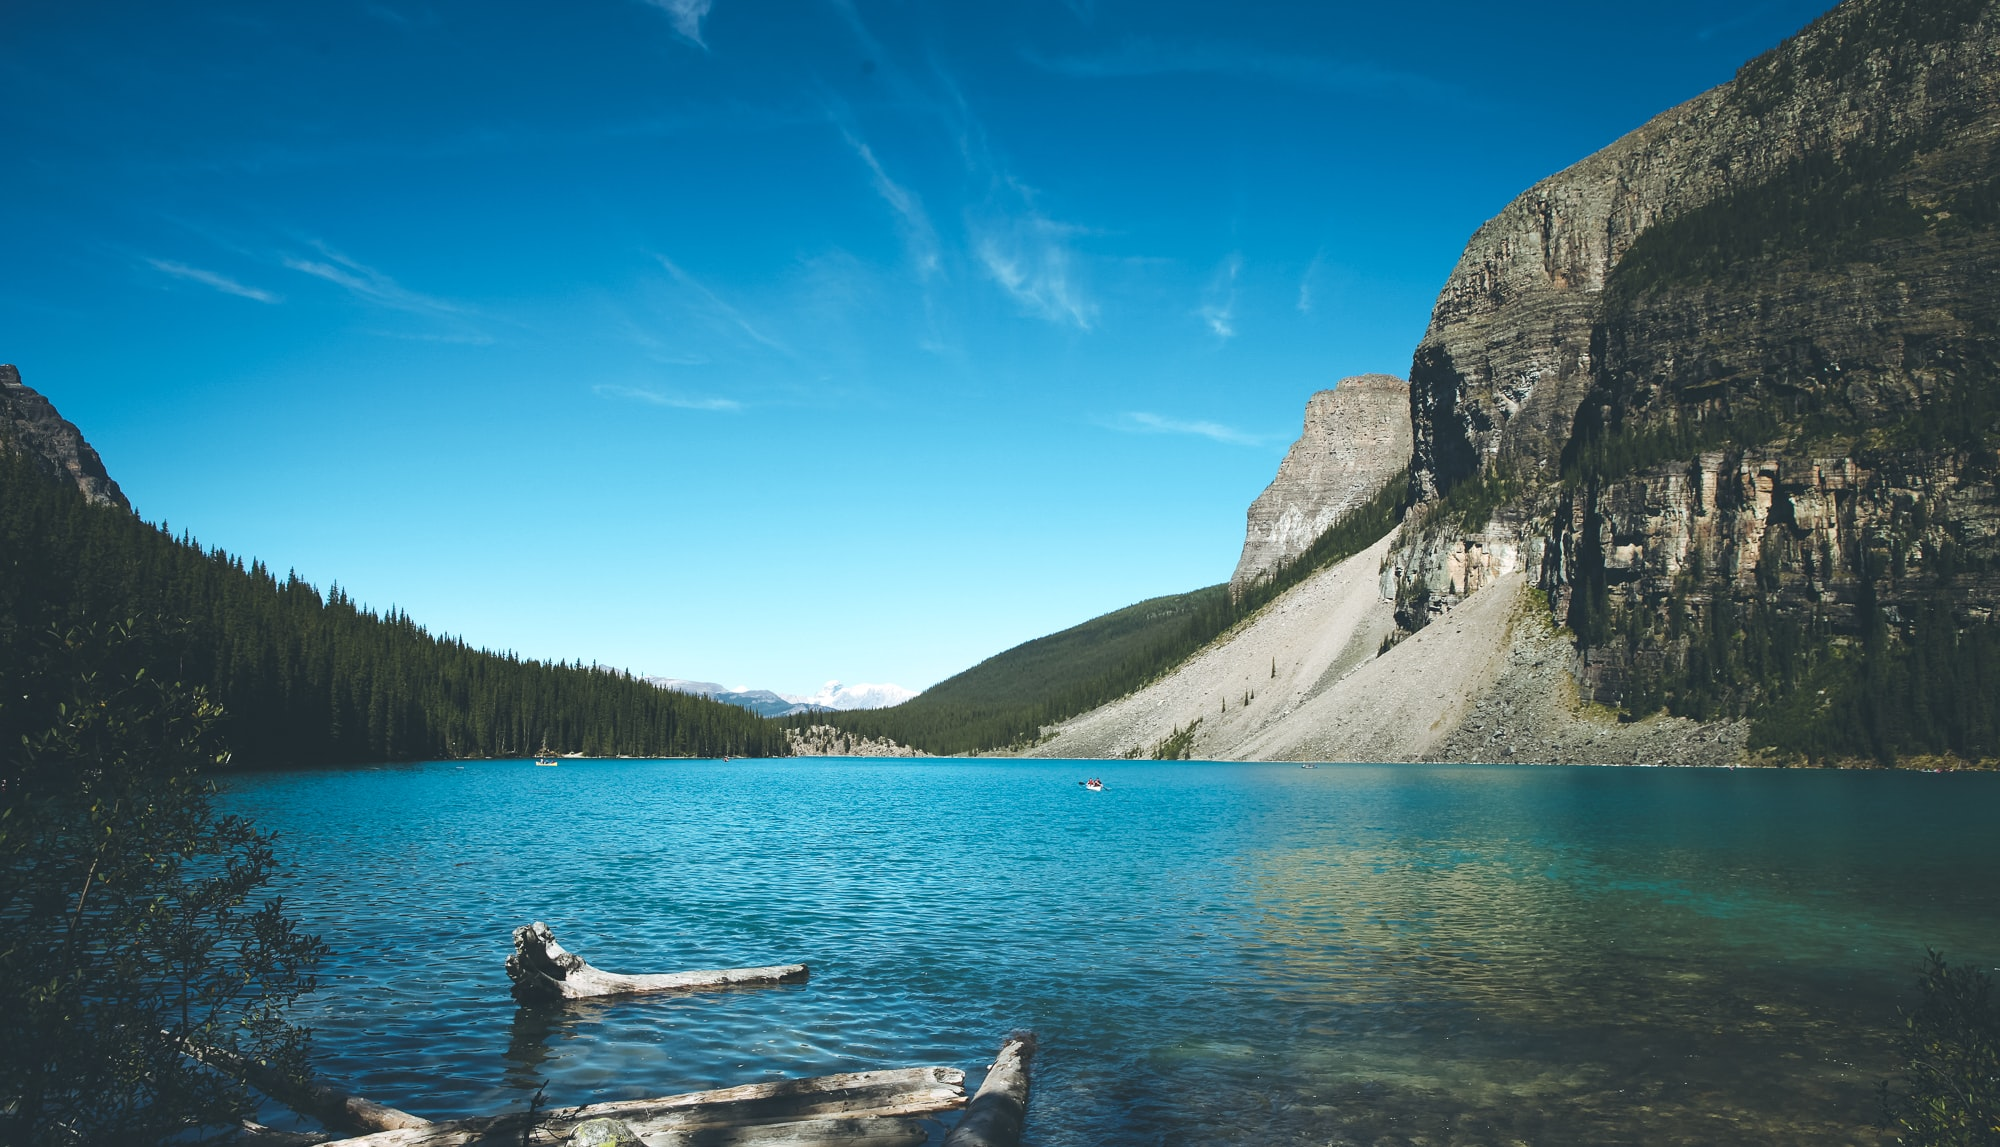 body of water beside mountain at daytime